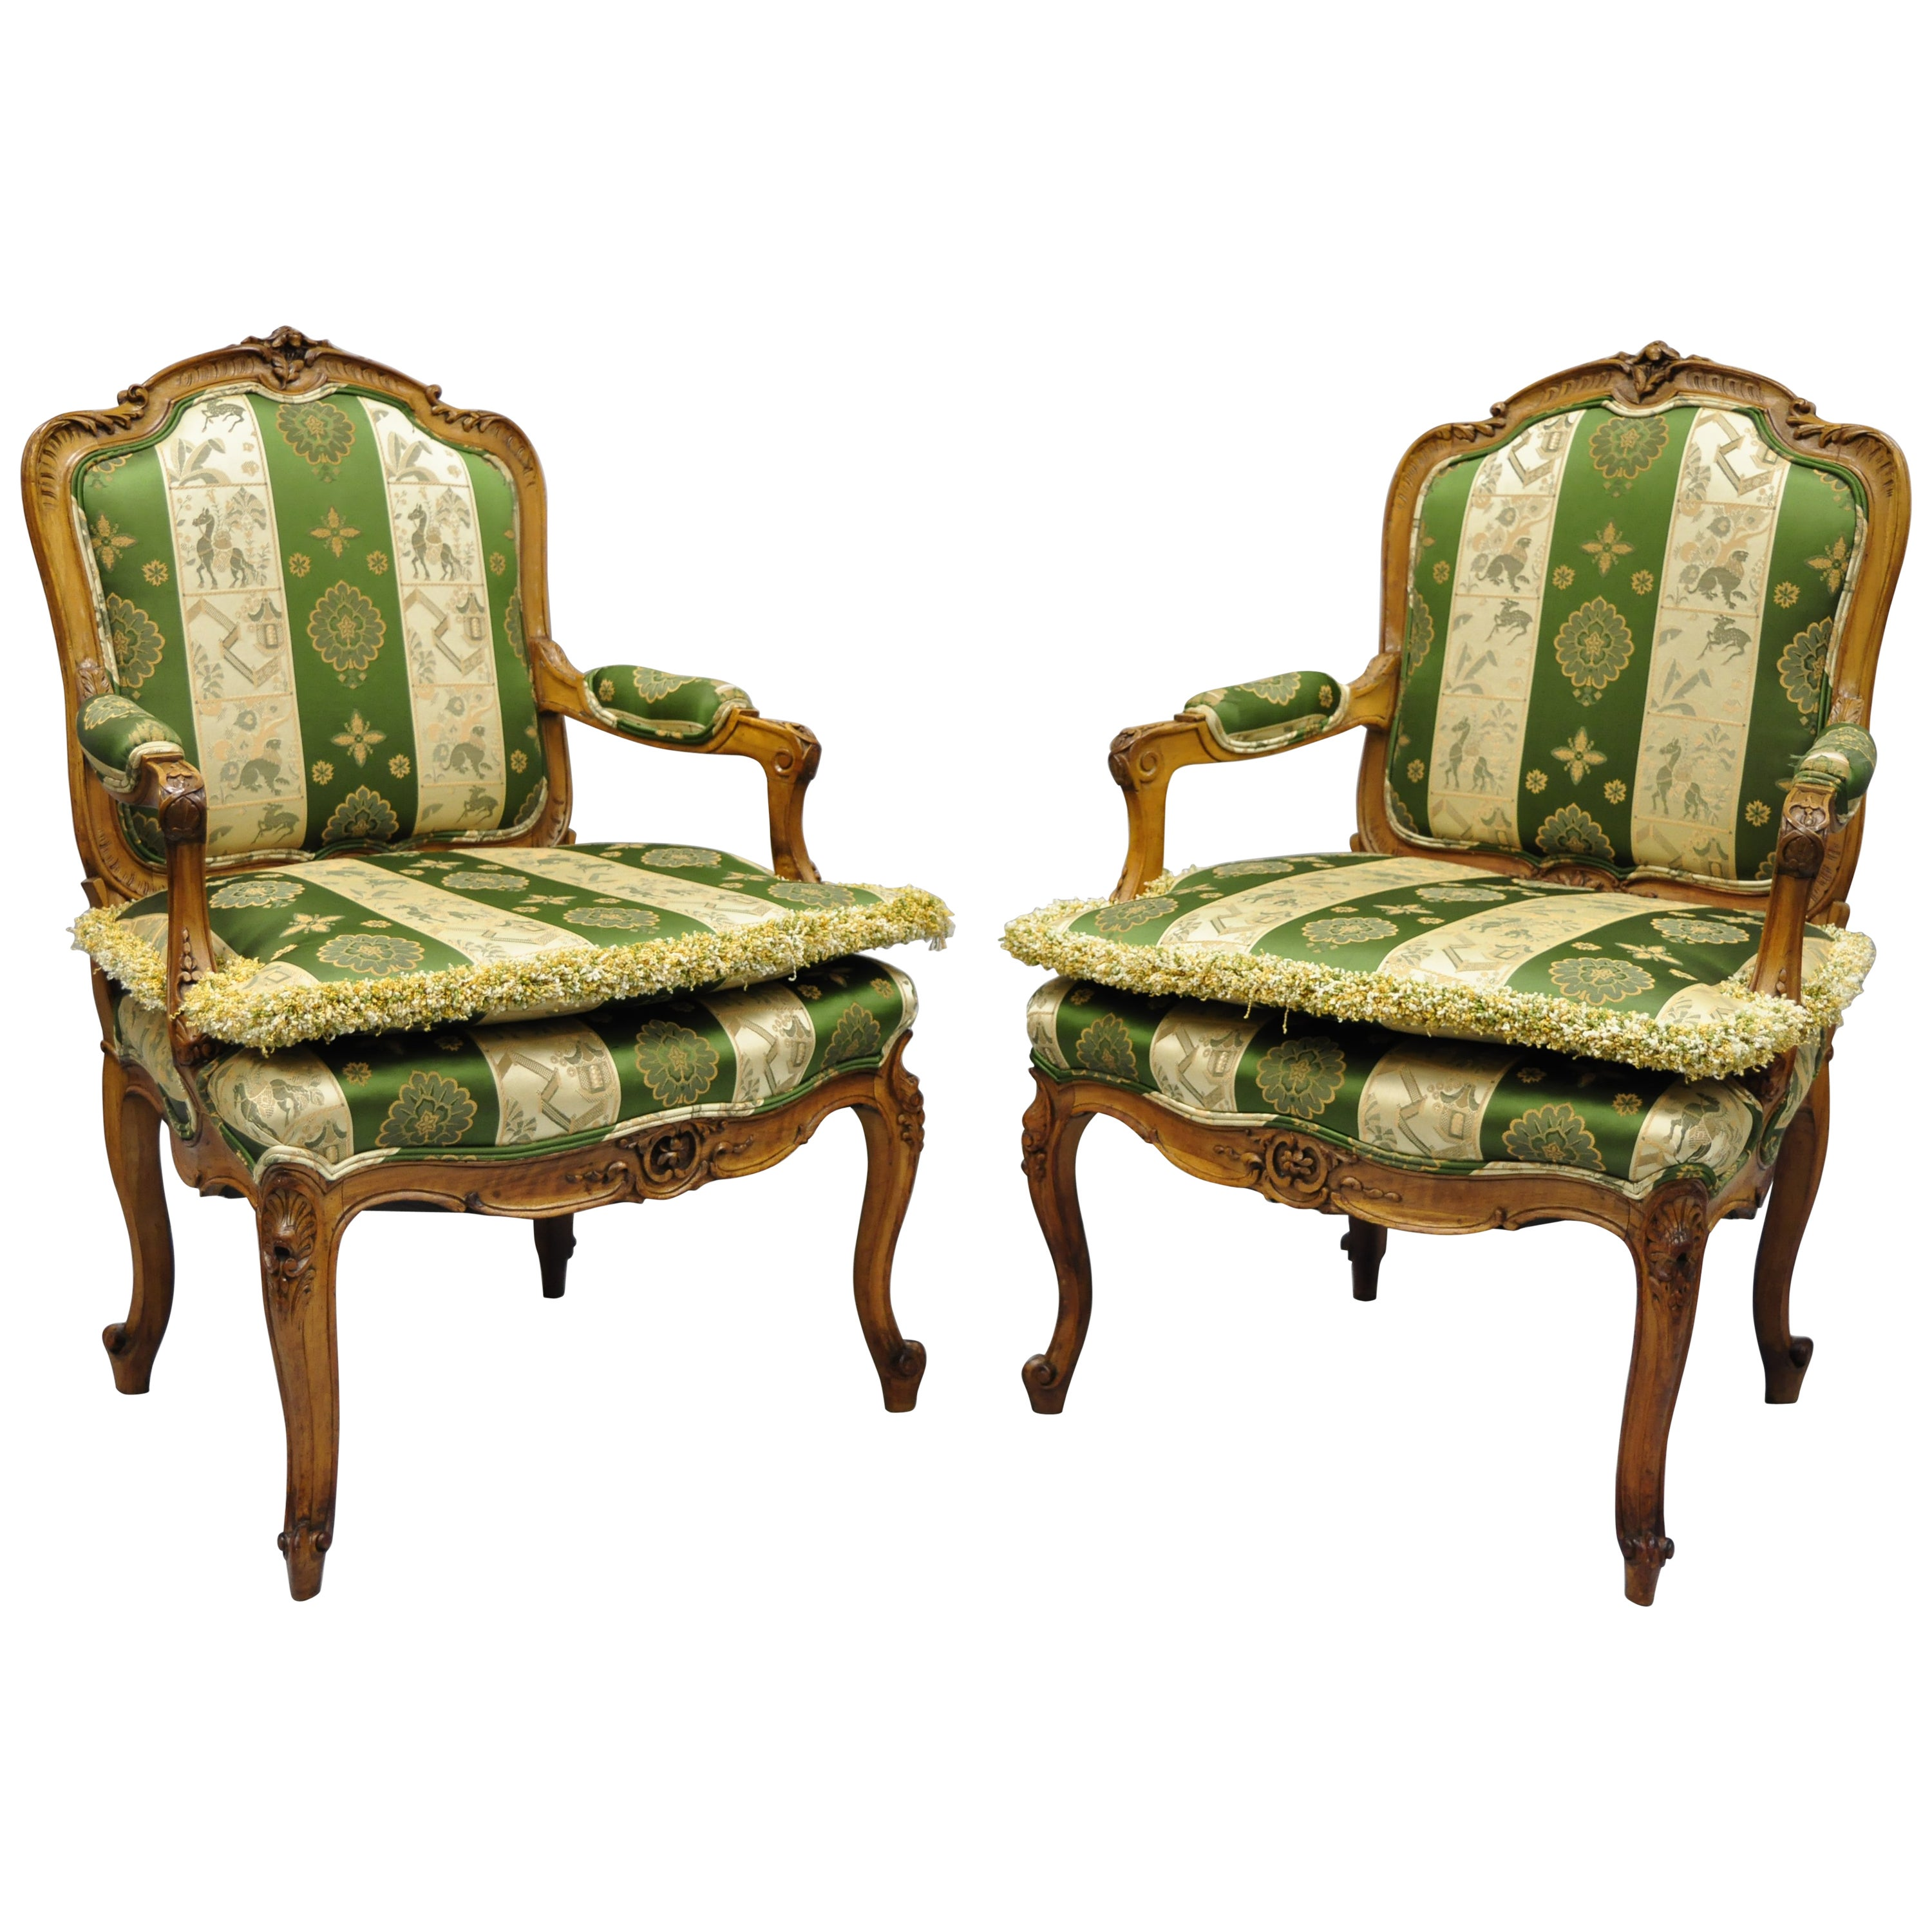 Pair of French Louis XV Style Cream Gold Walnut Fauteuil Armchairs